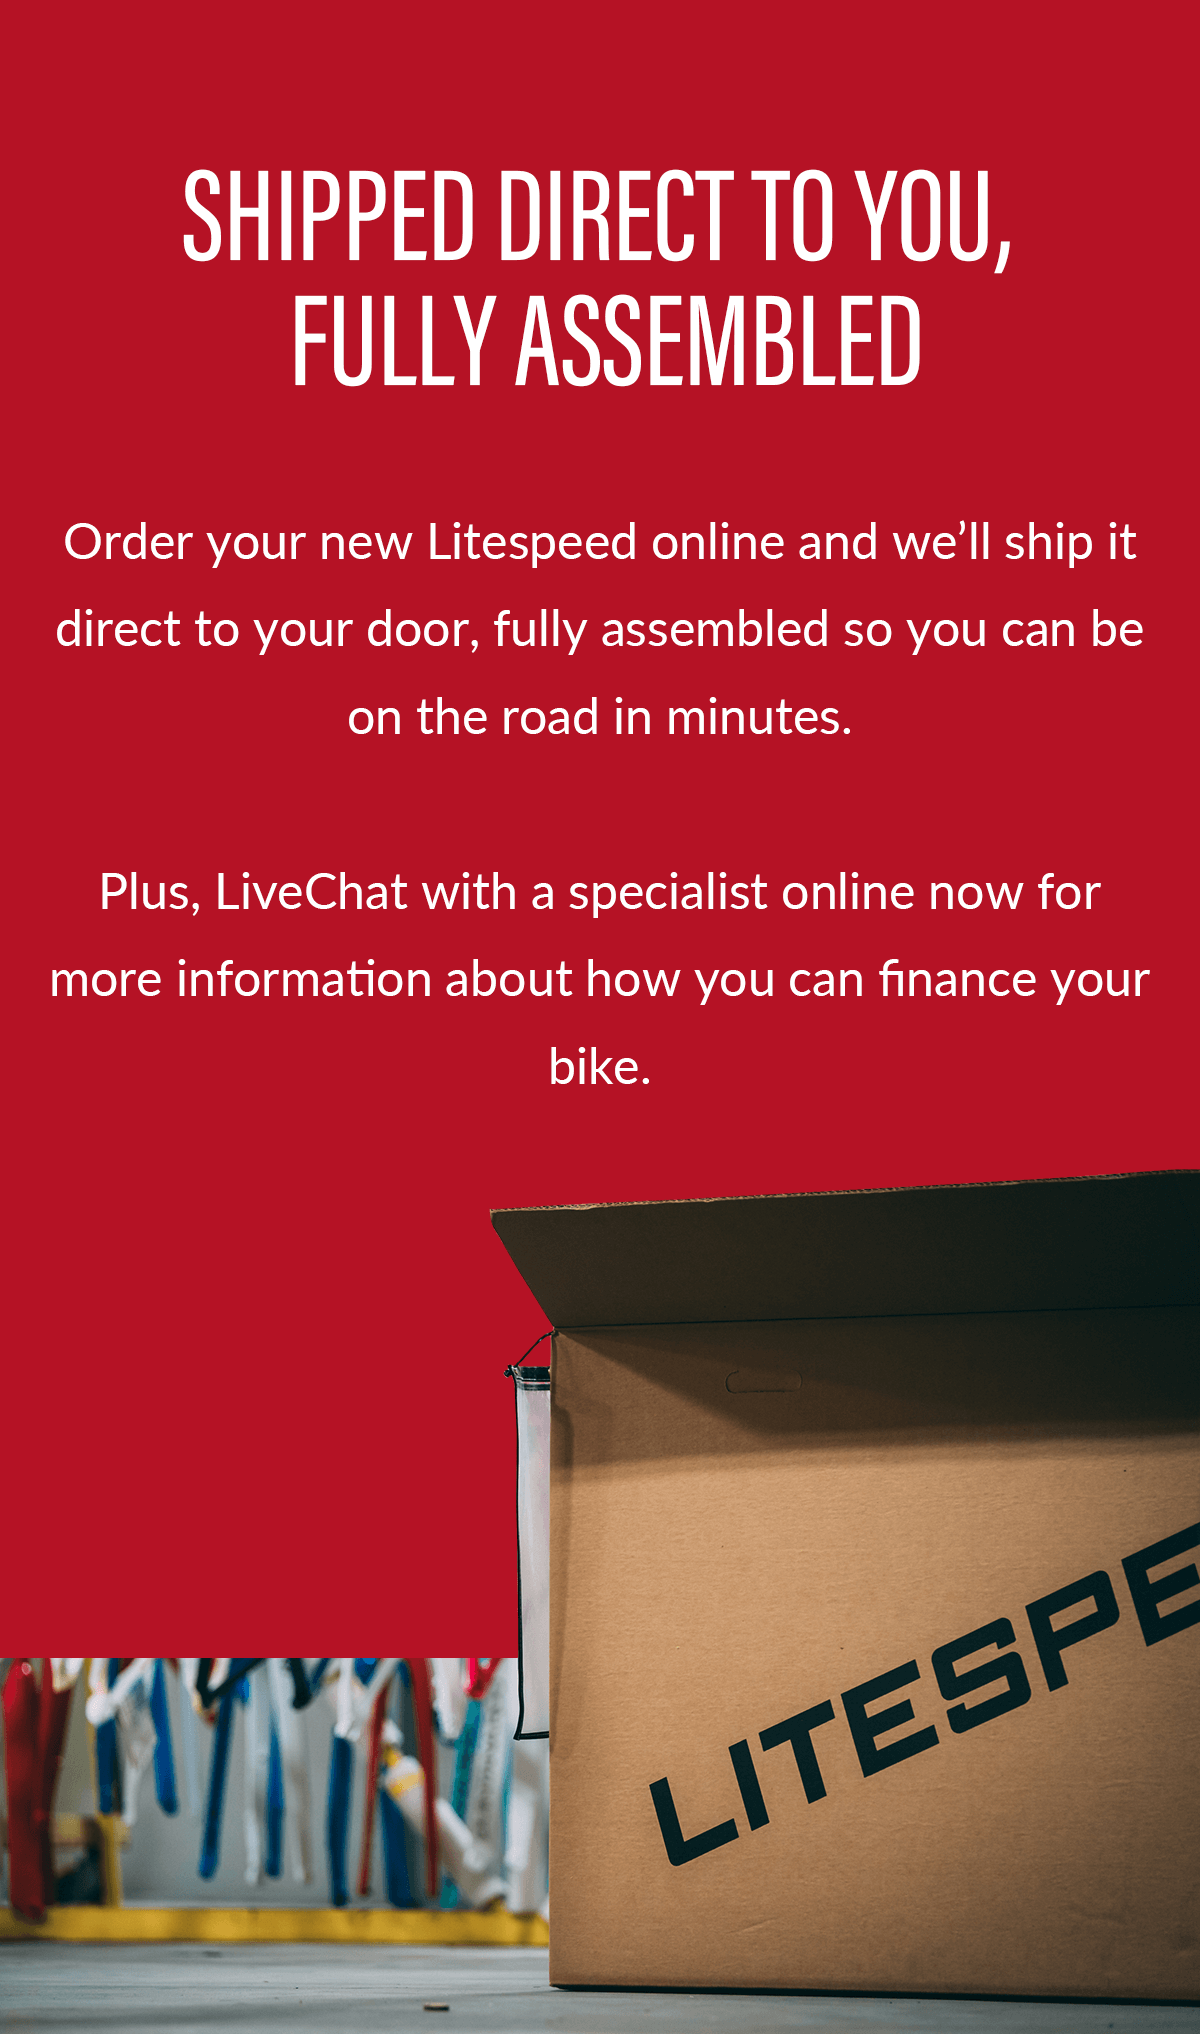 Order your new Litespeed online and we'll ship it direct to your door, fully assembled so you can be on the road in minutes. Plus, ask about financing options for your new bike.